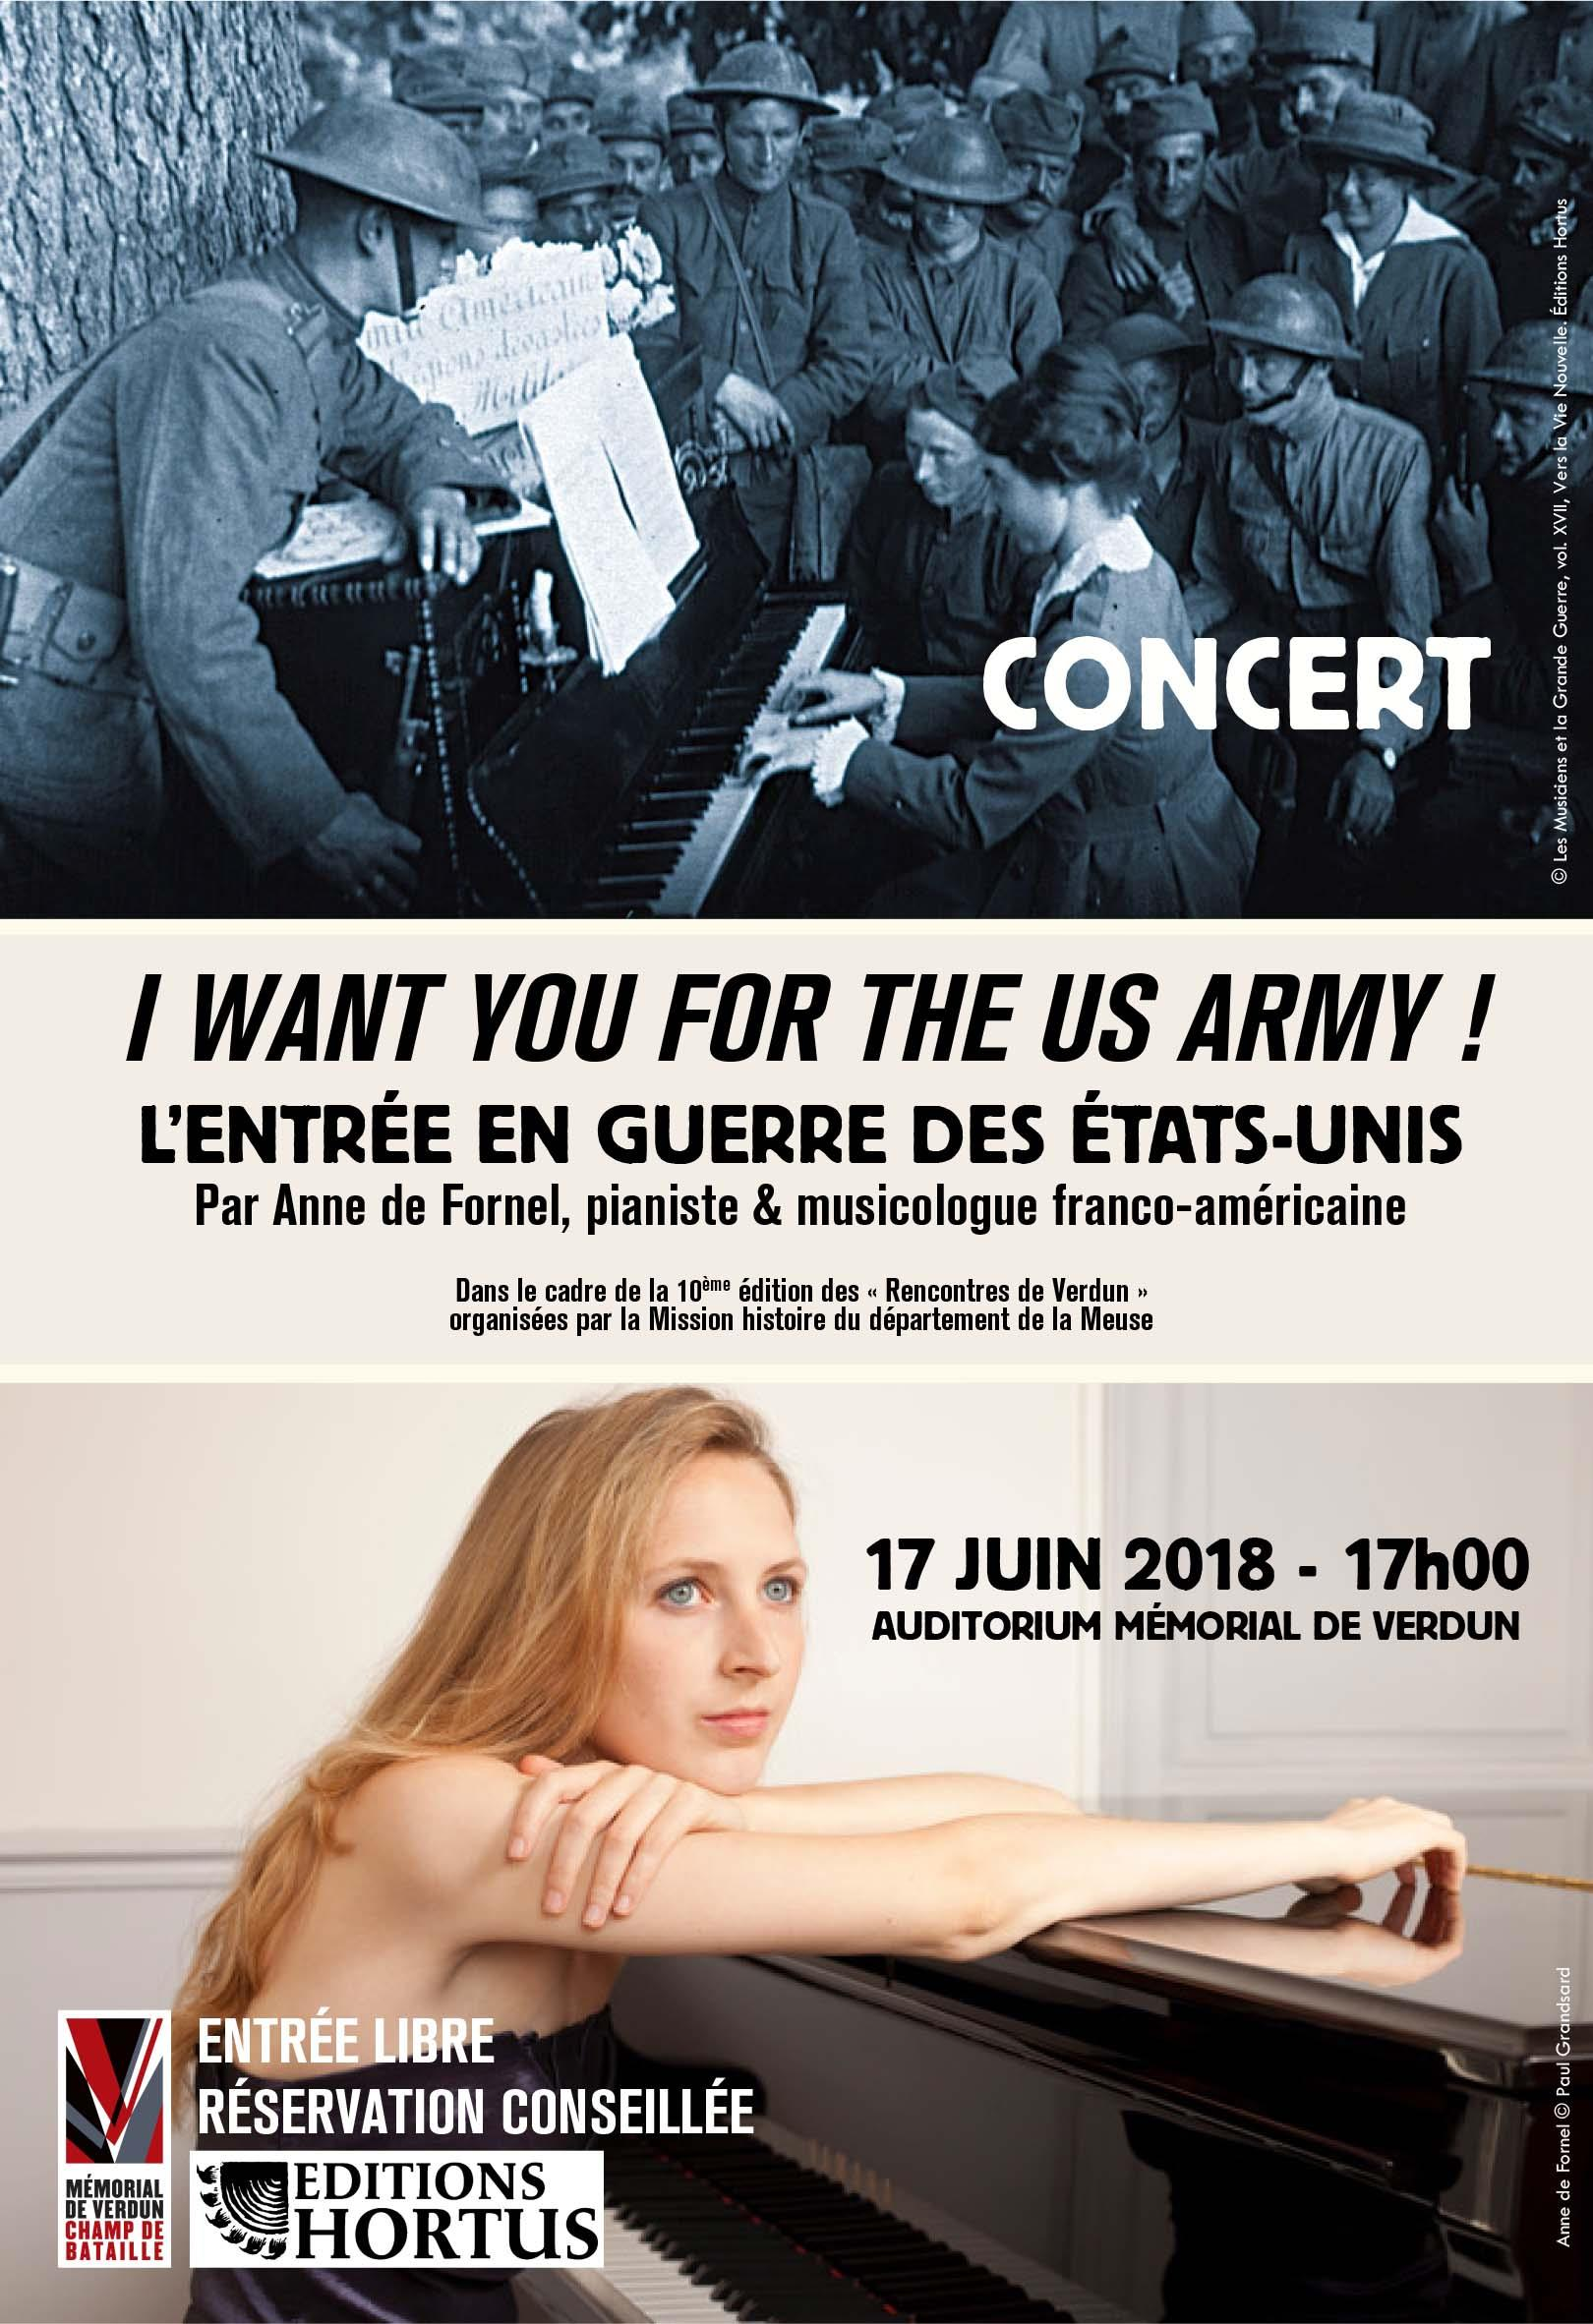 CONCERT I WANT YOU FOR THE US ARMY !